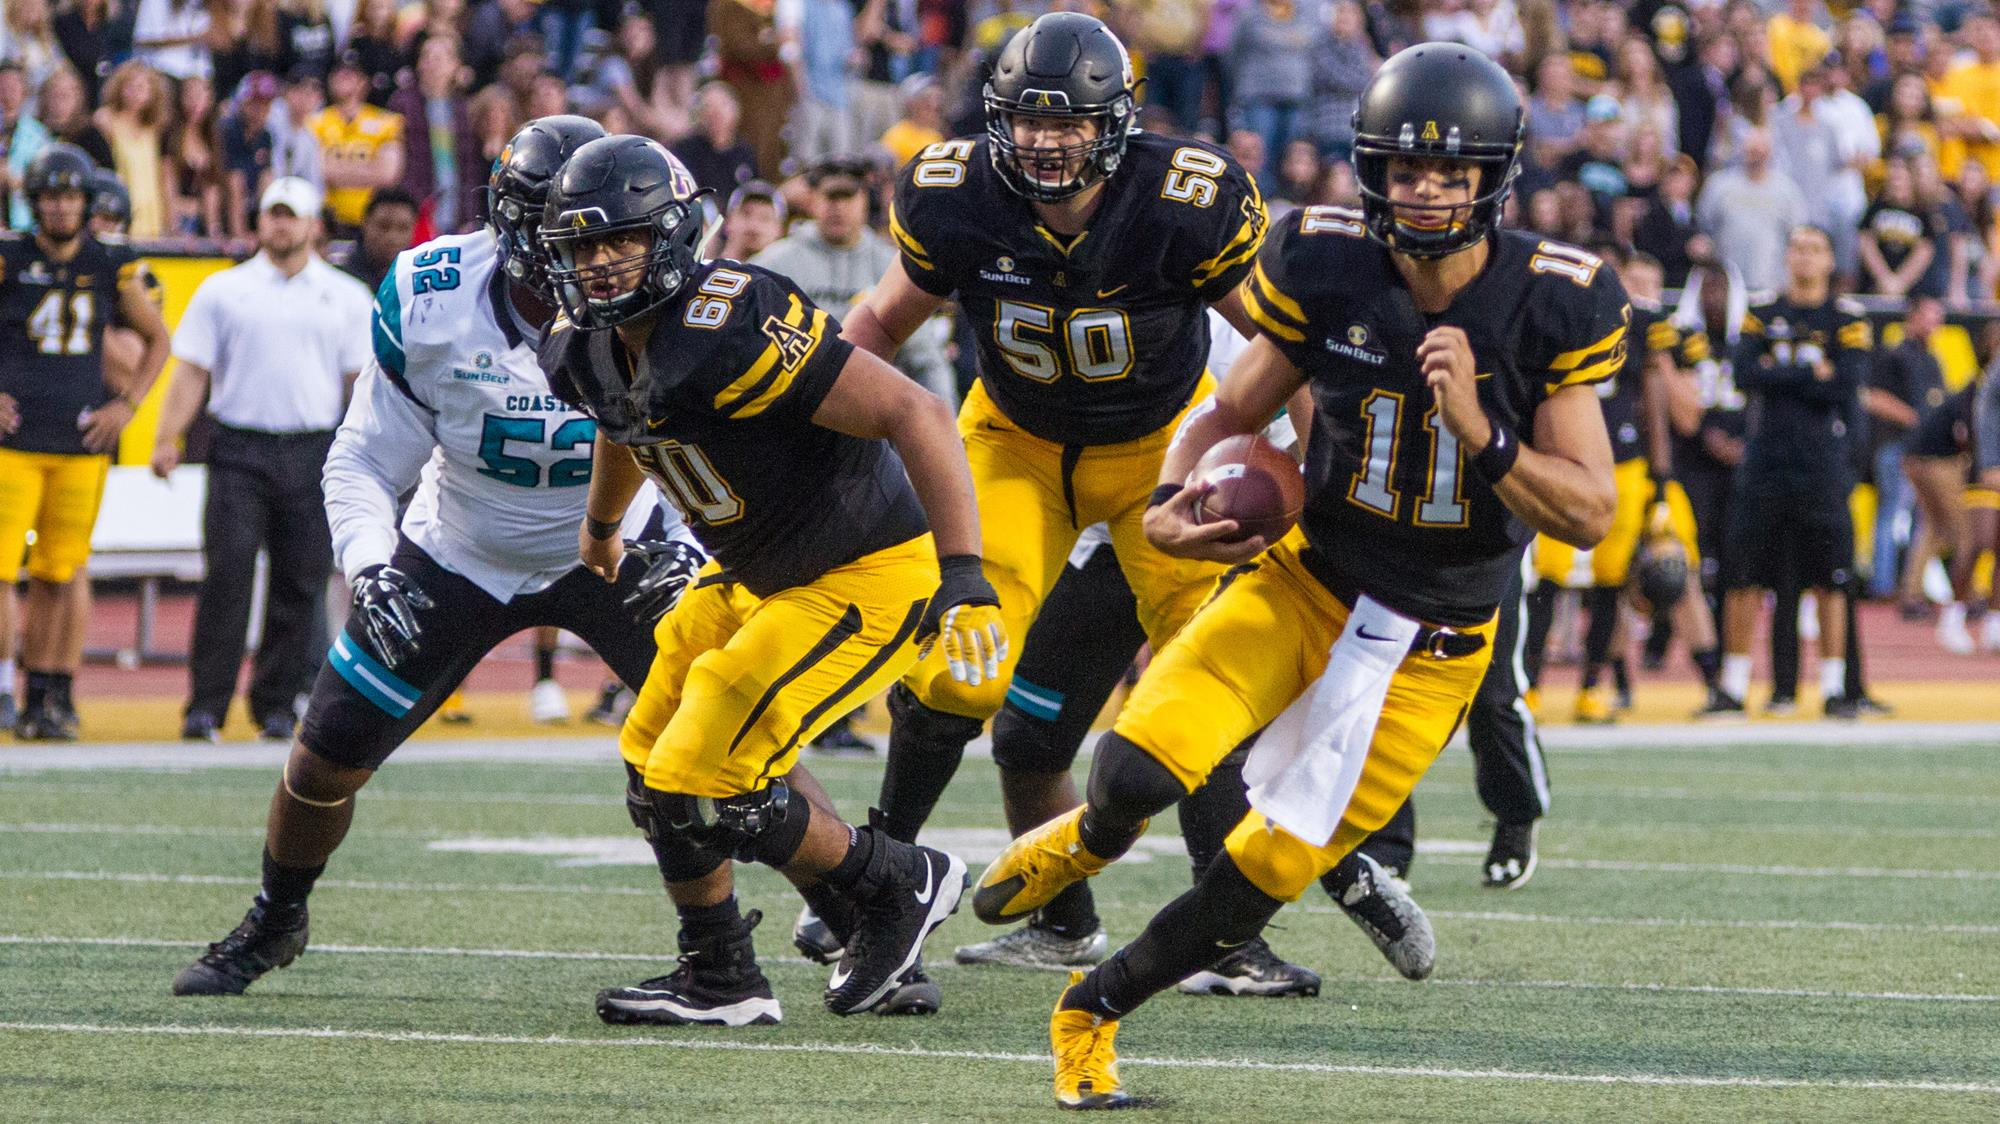 Lamb S Record Setting Day Leads App State To Sbc Win Appalachian